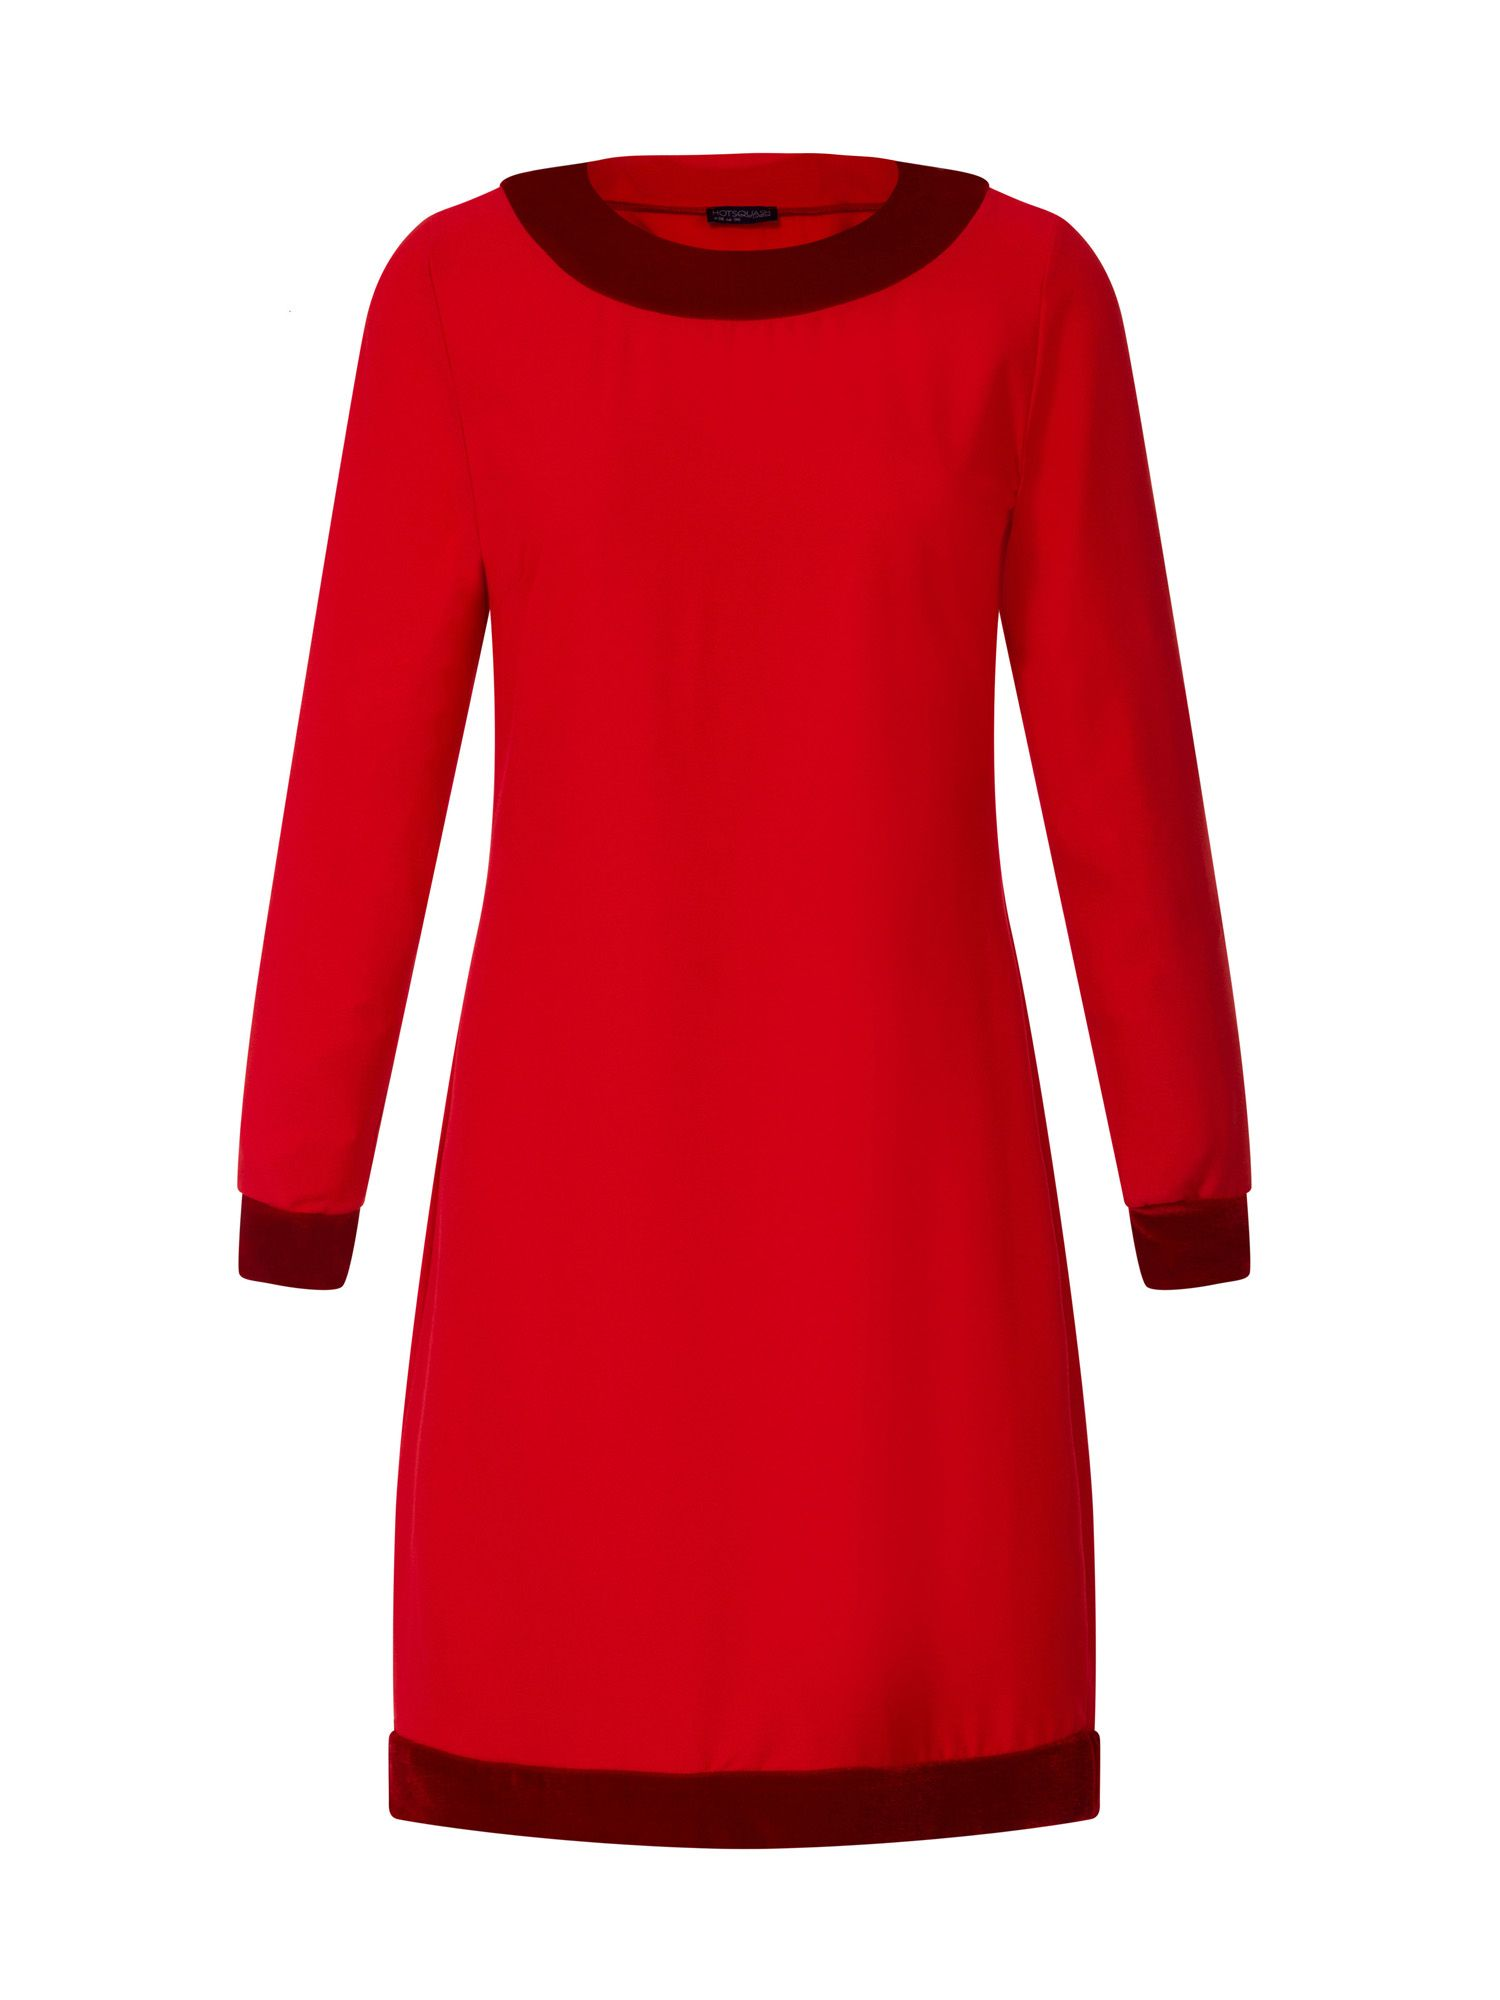 HotSquash Swing Dress with Velvet in Clever Fabric, Red